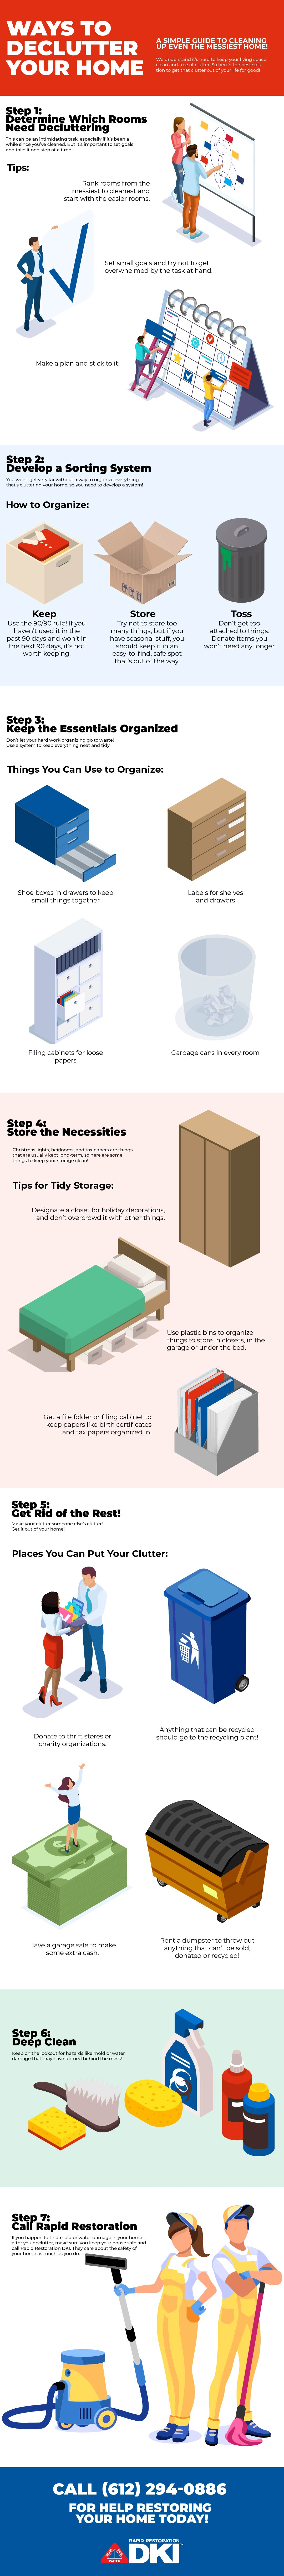 infographic about tips to declutter your home